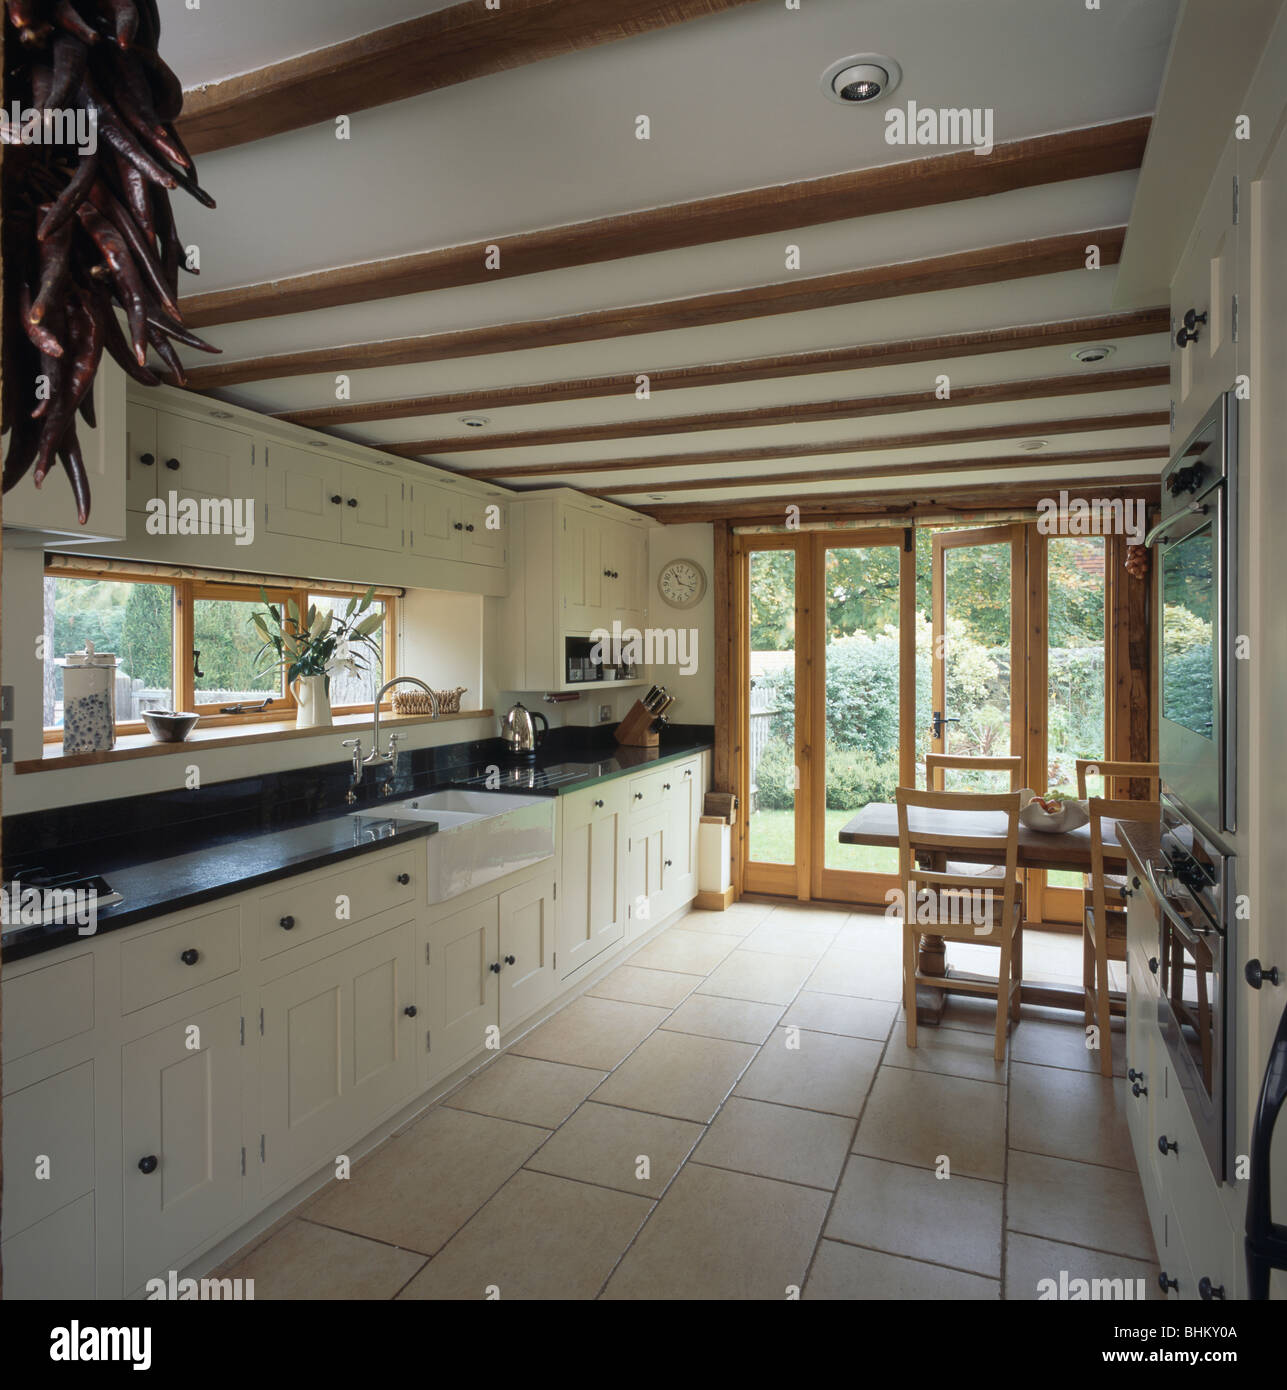 Cream Ceramic Floor Tiles In Country Kitchen With White Fitted Units Stock Photo Alamy